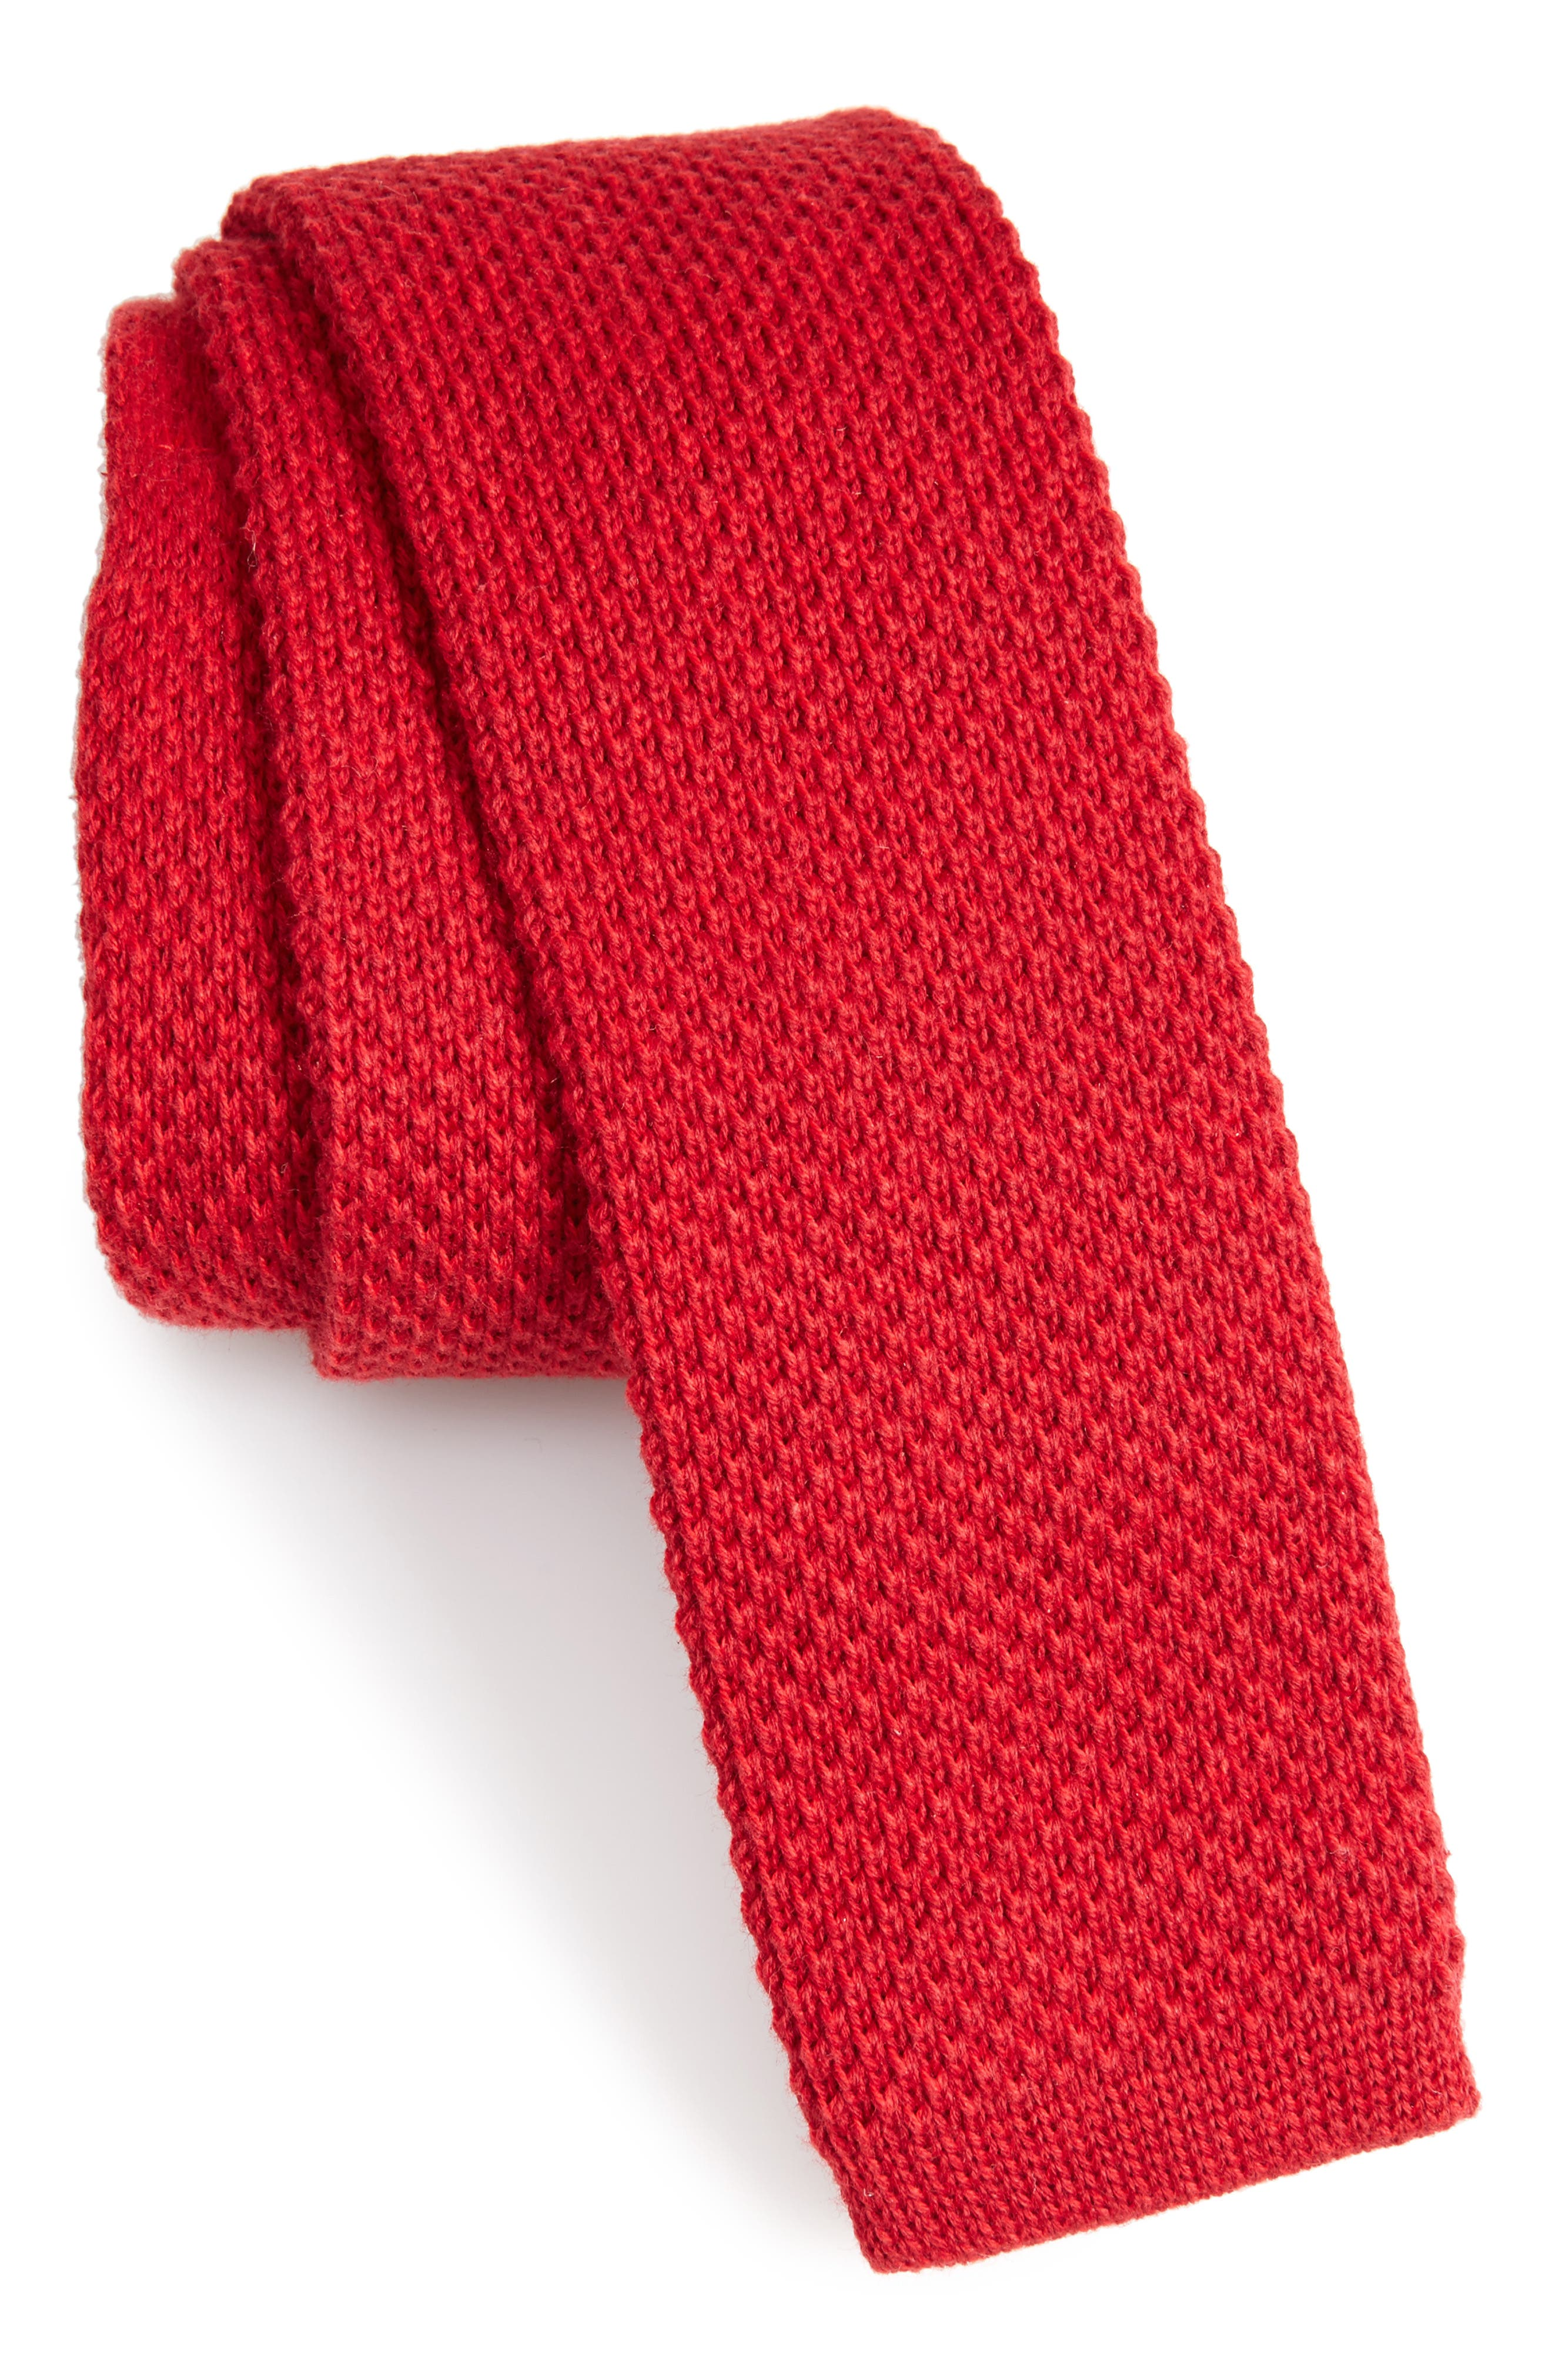 Skinny Knit Cotton Tie,                         Main,                         color, RED